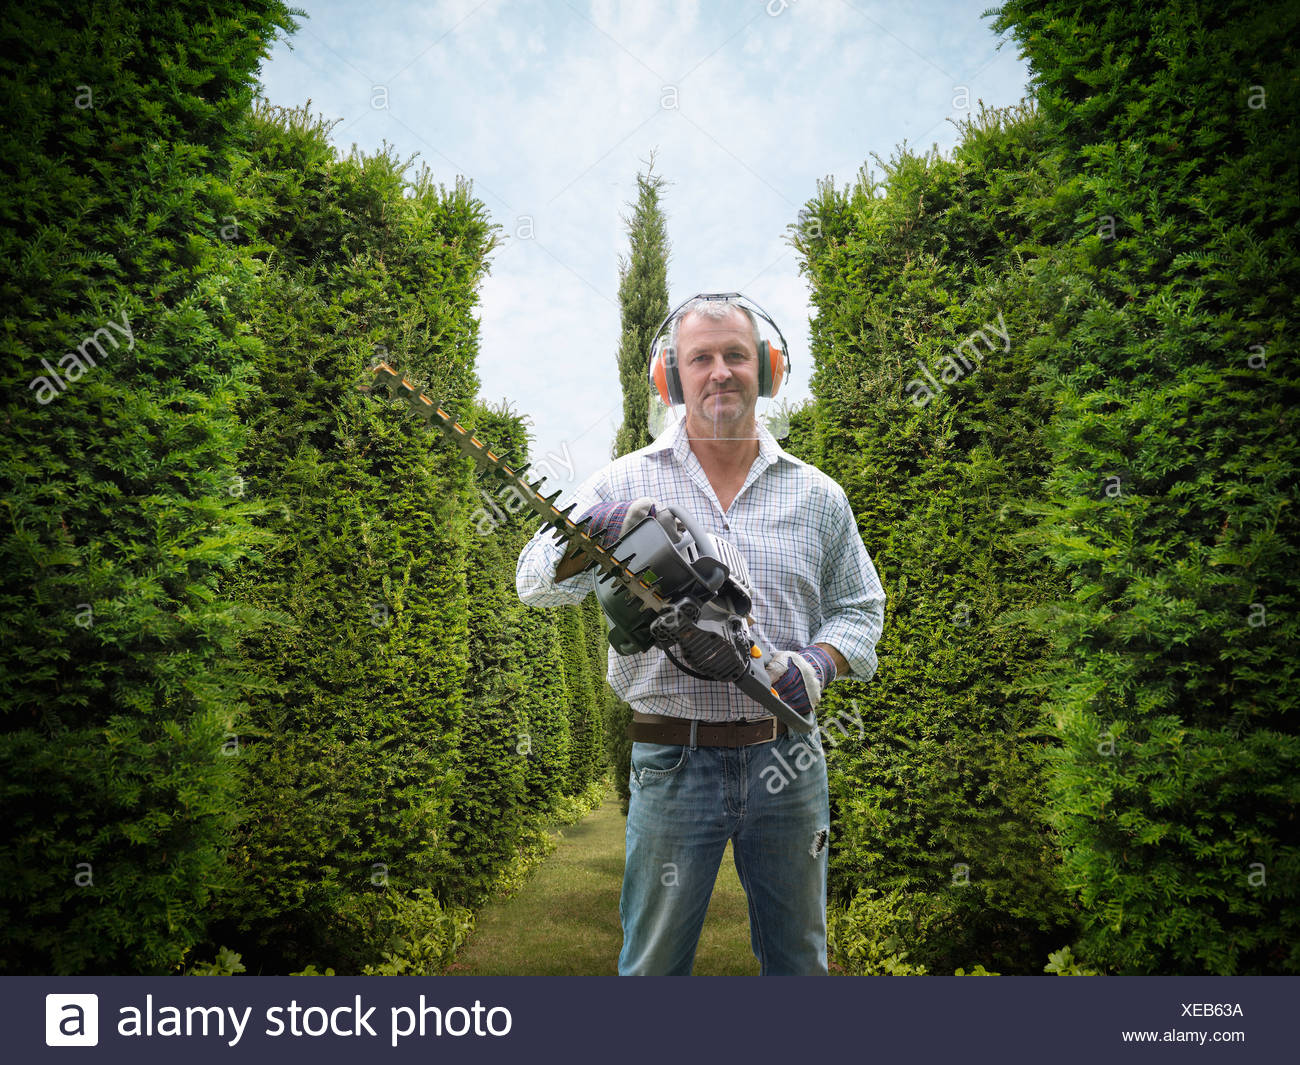 Man holding hedge trimmer in garden - Stock Image